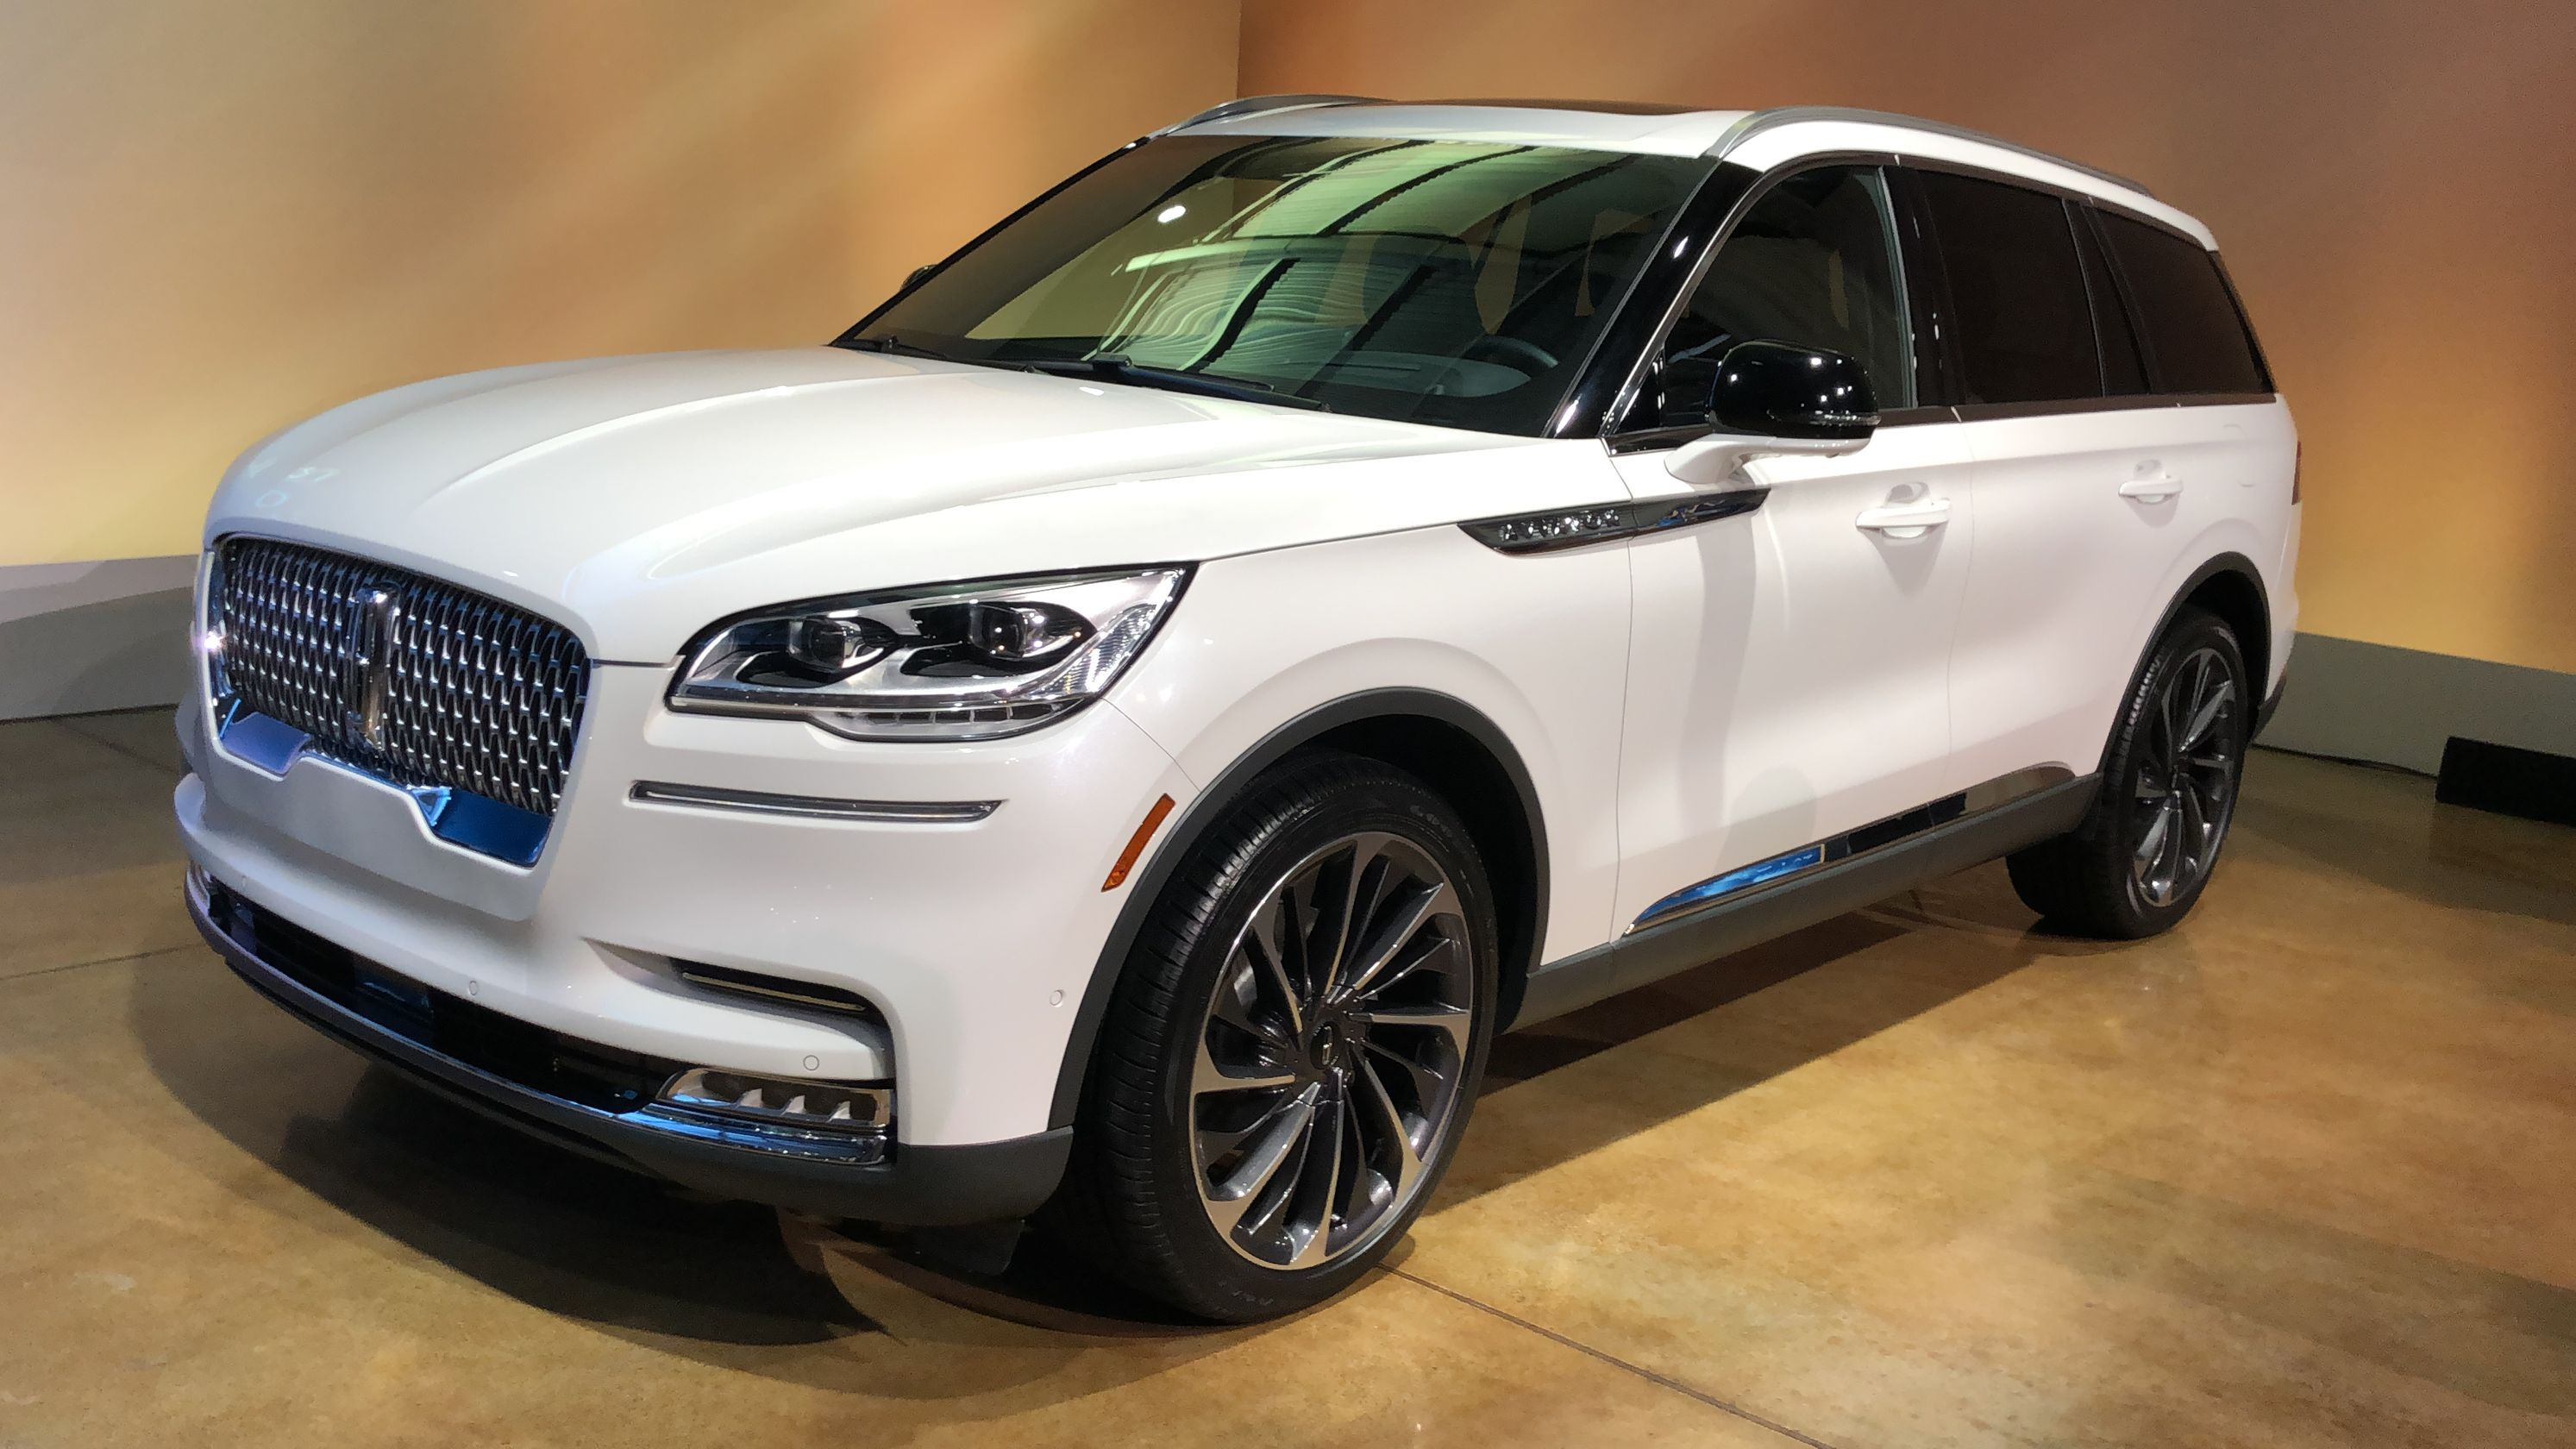 2020 Lincoln Aviator 10 Things Customers Will Like About All New Suv Lincoln Aviator Lincoln Cars New Suv